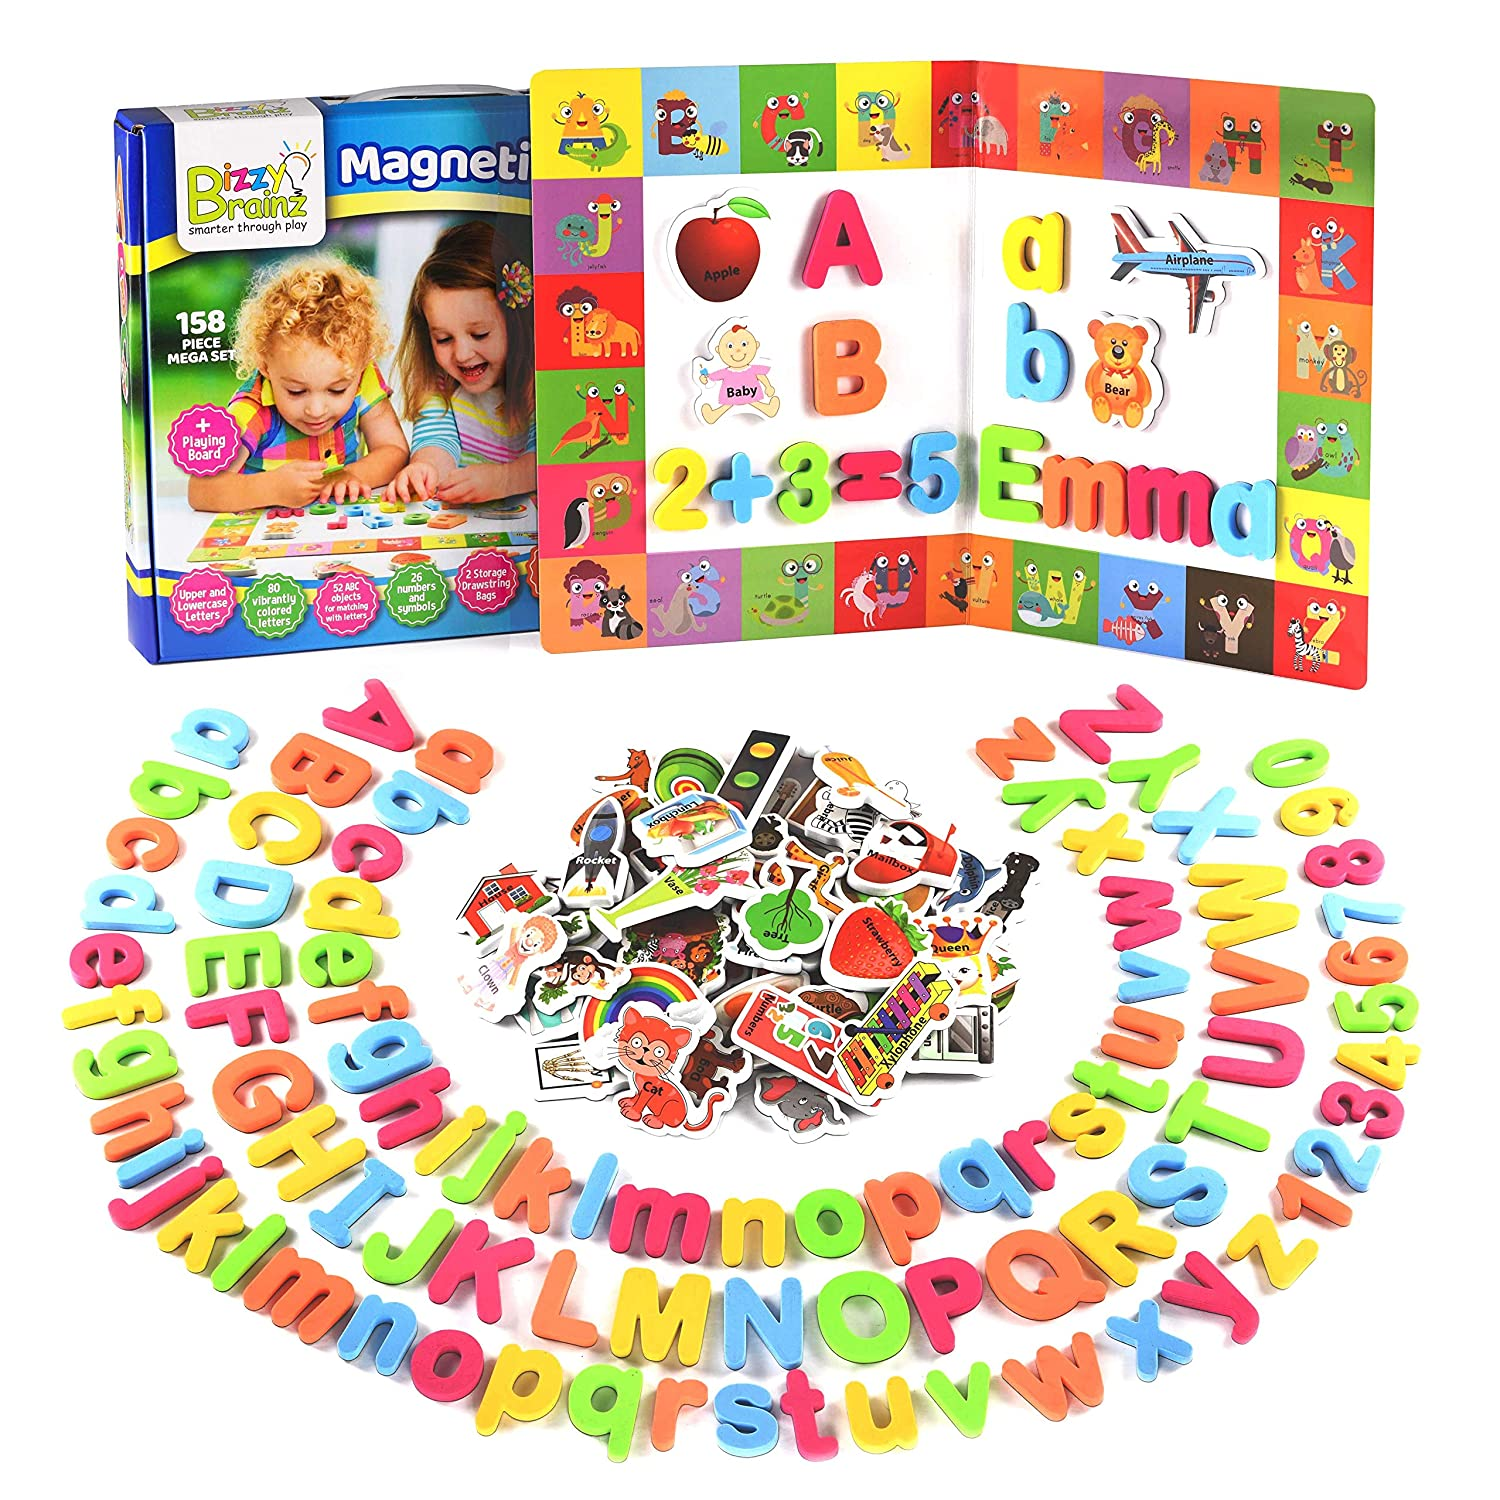 BizzyBrainz Magnetic Letters Mega Set - 158-Pieces ABC Magnets, Numbers and Objects for Kids   Educational Foam ABC Learning Toy Game with Nifty Play Board + Activity eBooks